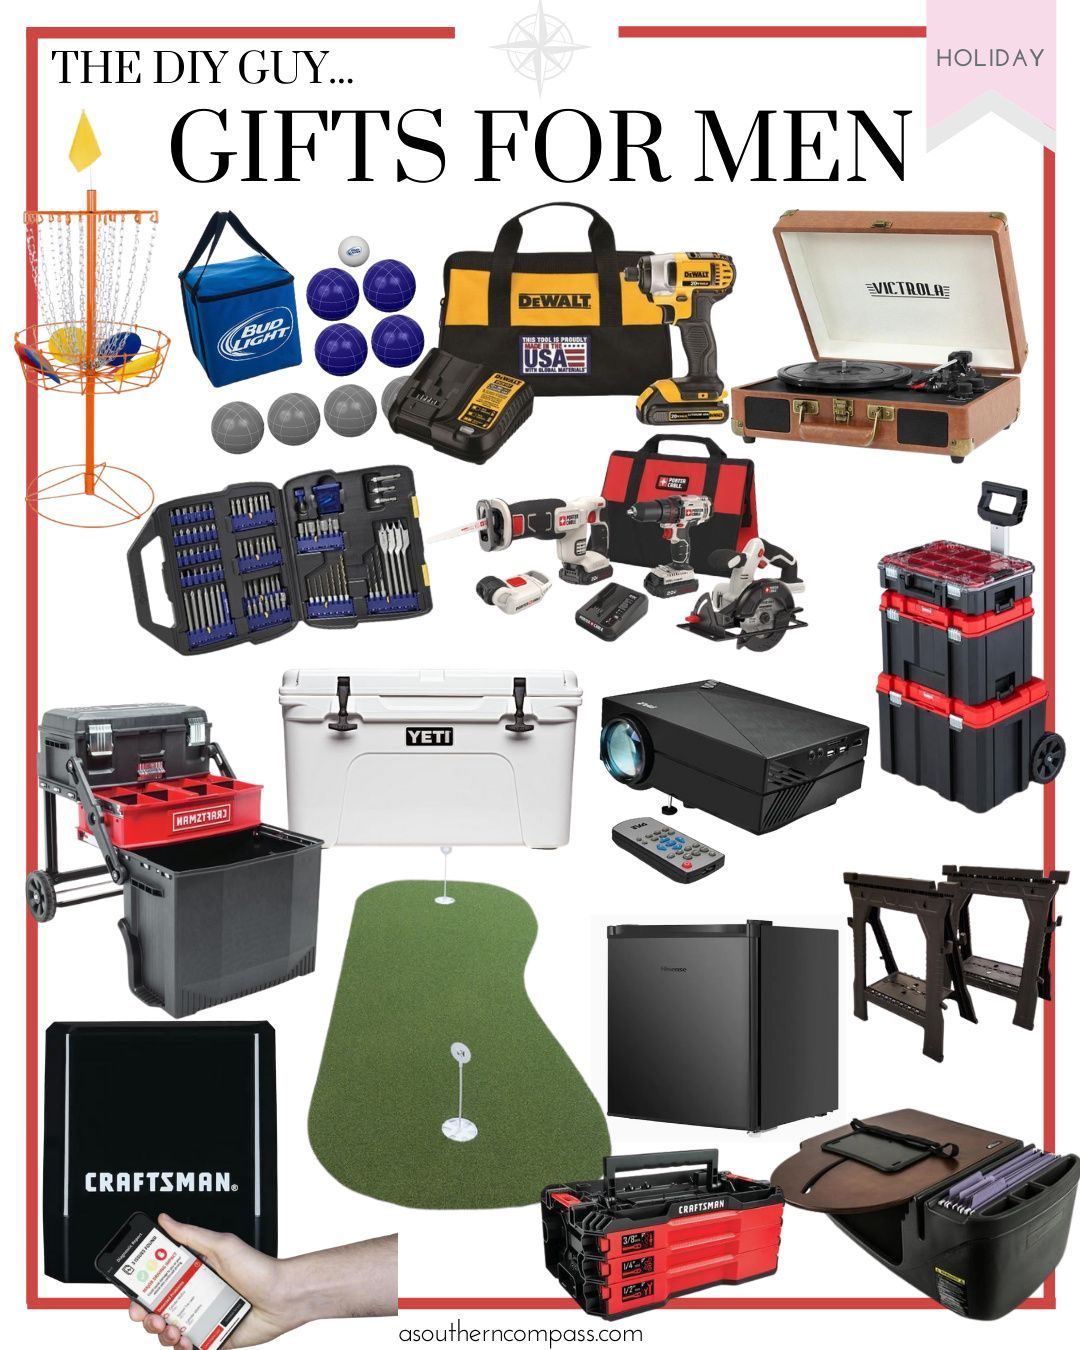 Gifts For Men A Southern Compass Mens Gift Guide Gifts For Men Gifts